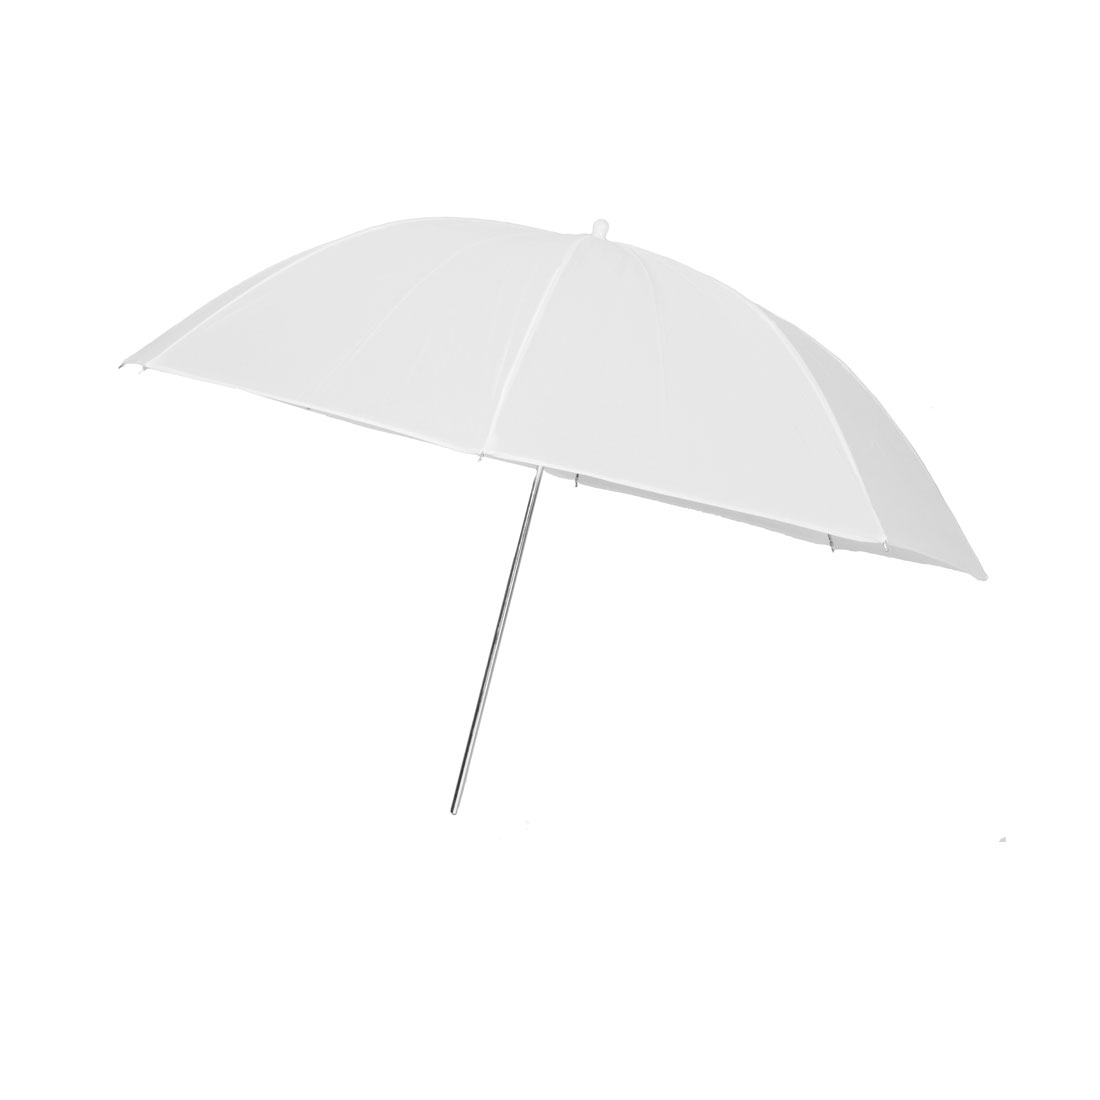 "33"" Diameter Foldable Soft Light Photography White Umbrella Brolly"